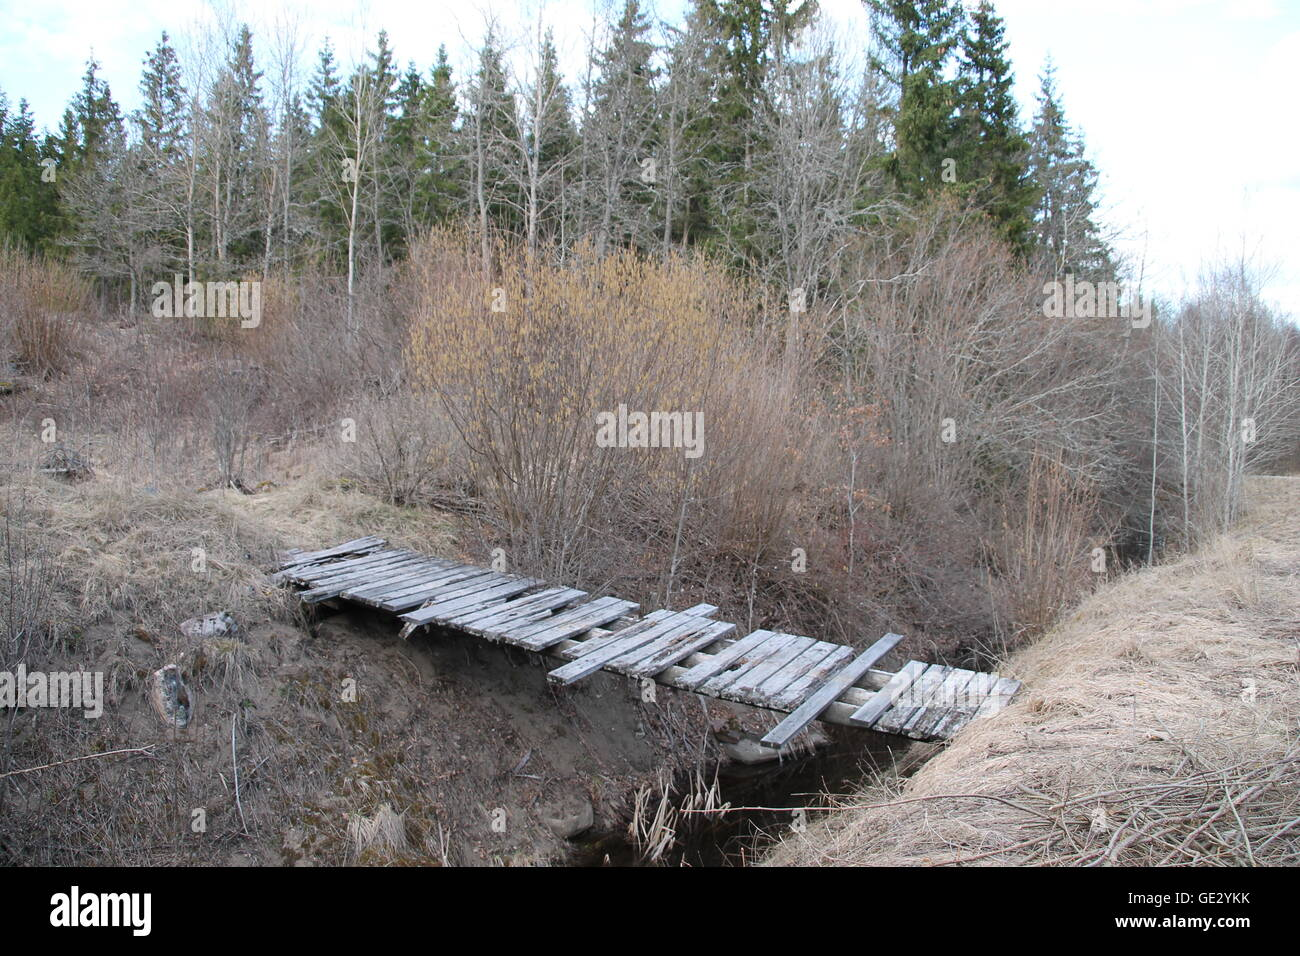 Old bridge on a river near the forest. - Stock Image